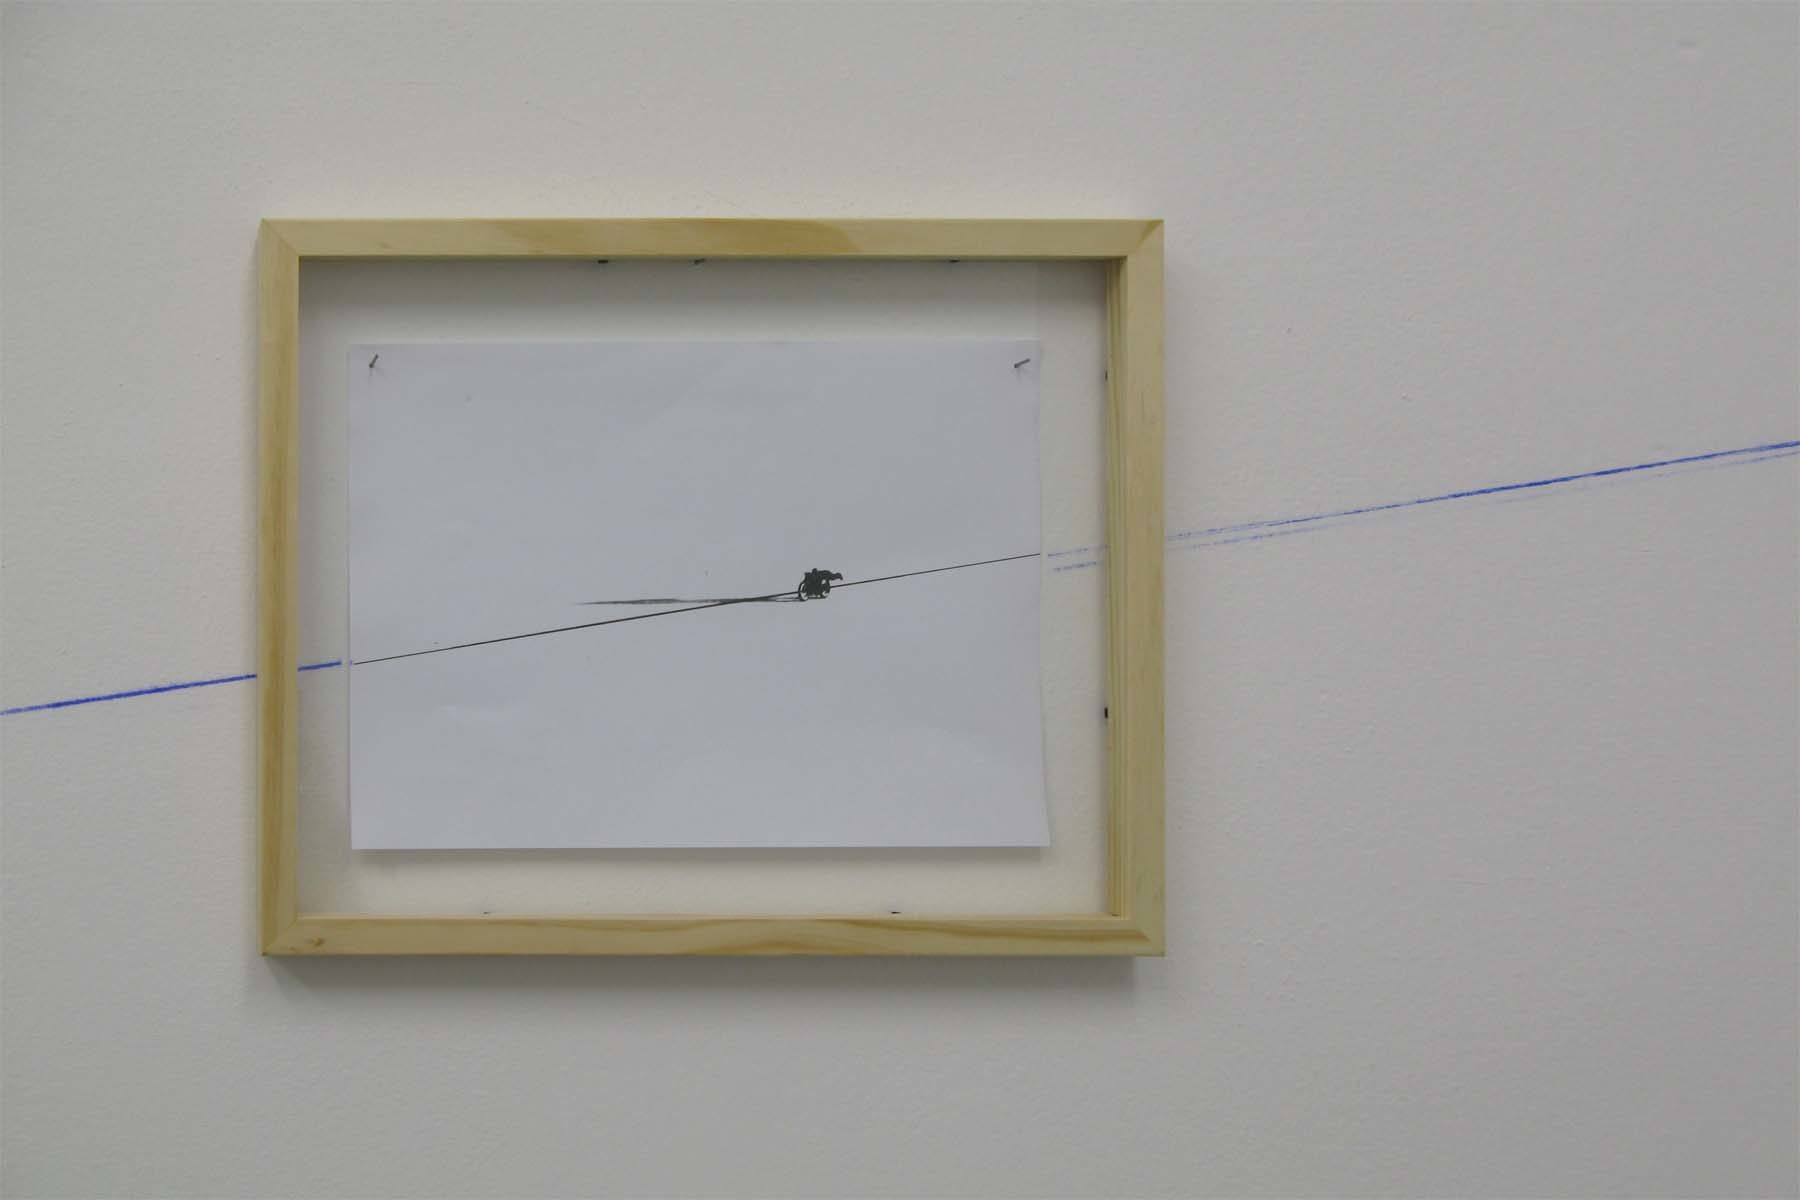 M. Bazzana, Speedline, 2009, color print, dust, wood frame, environmental dimensions